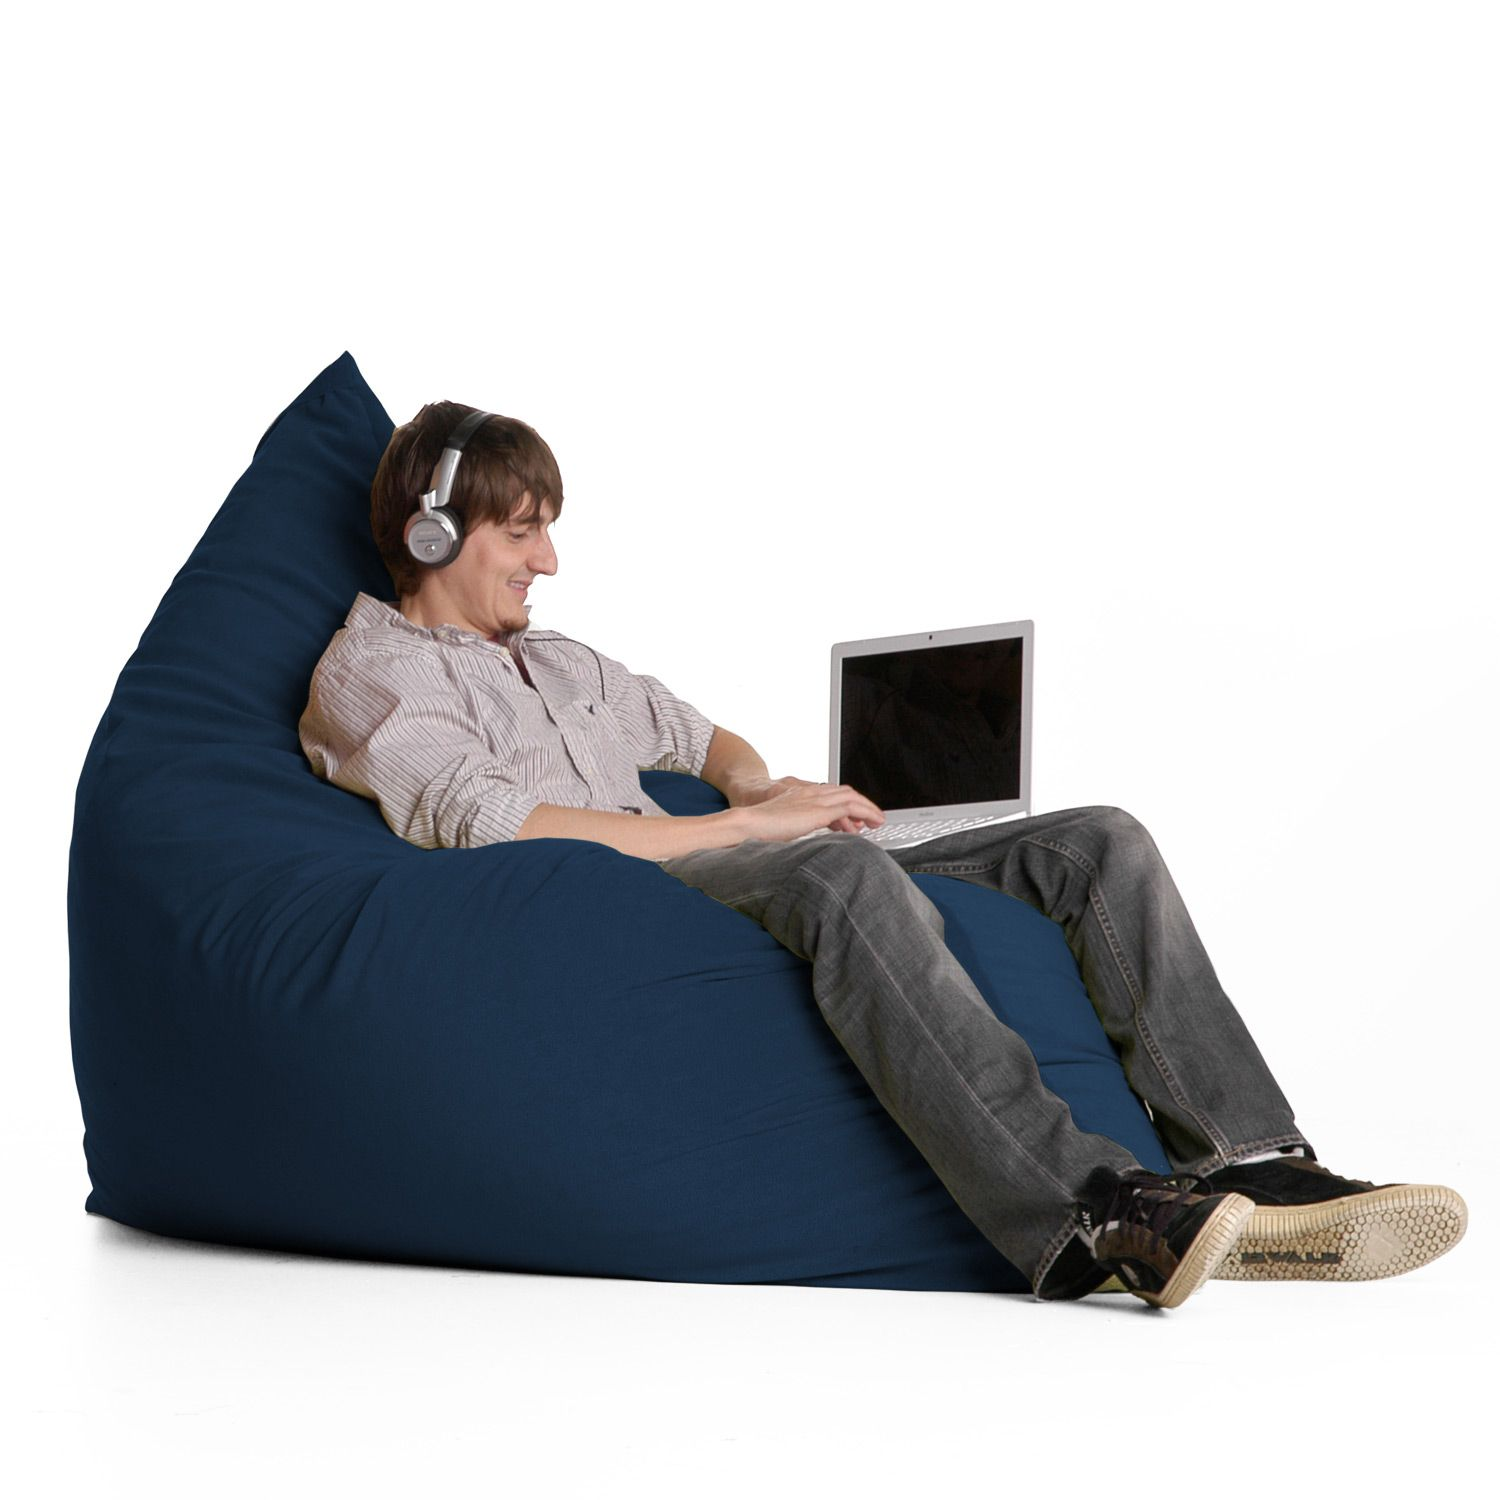 Jaxx Pillow Sak The Ideal Lounger For Teenagers Mold It And Shape It And Sit In It However You Want Lay It Flat And Use Sitzsack Sofa Sitzsack Bett Sitzen